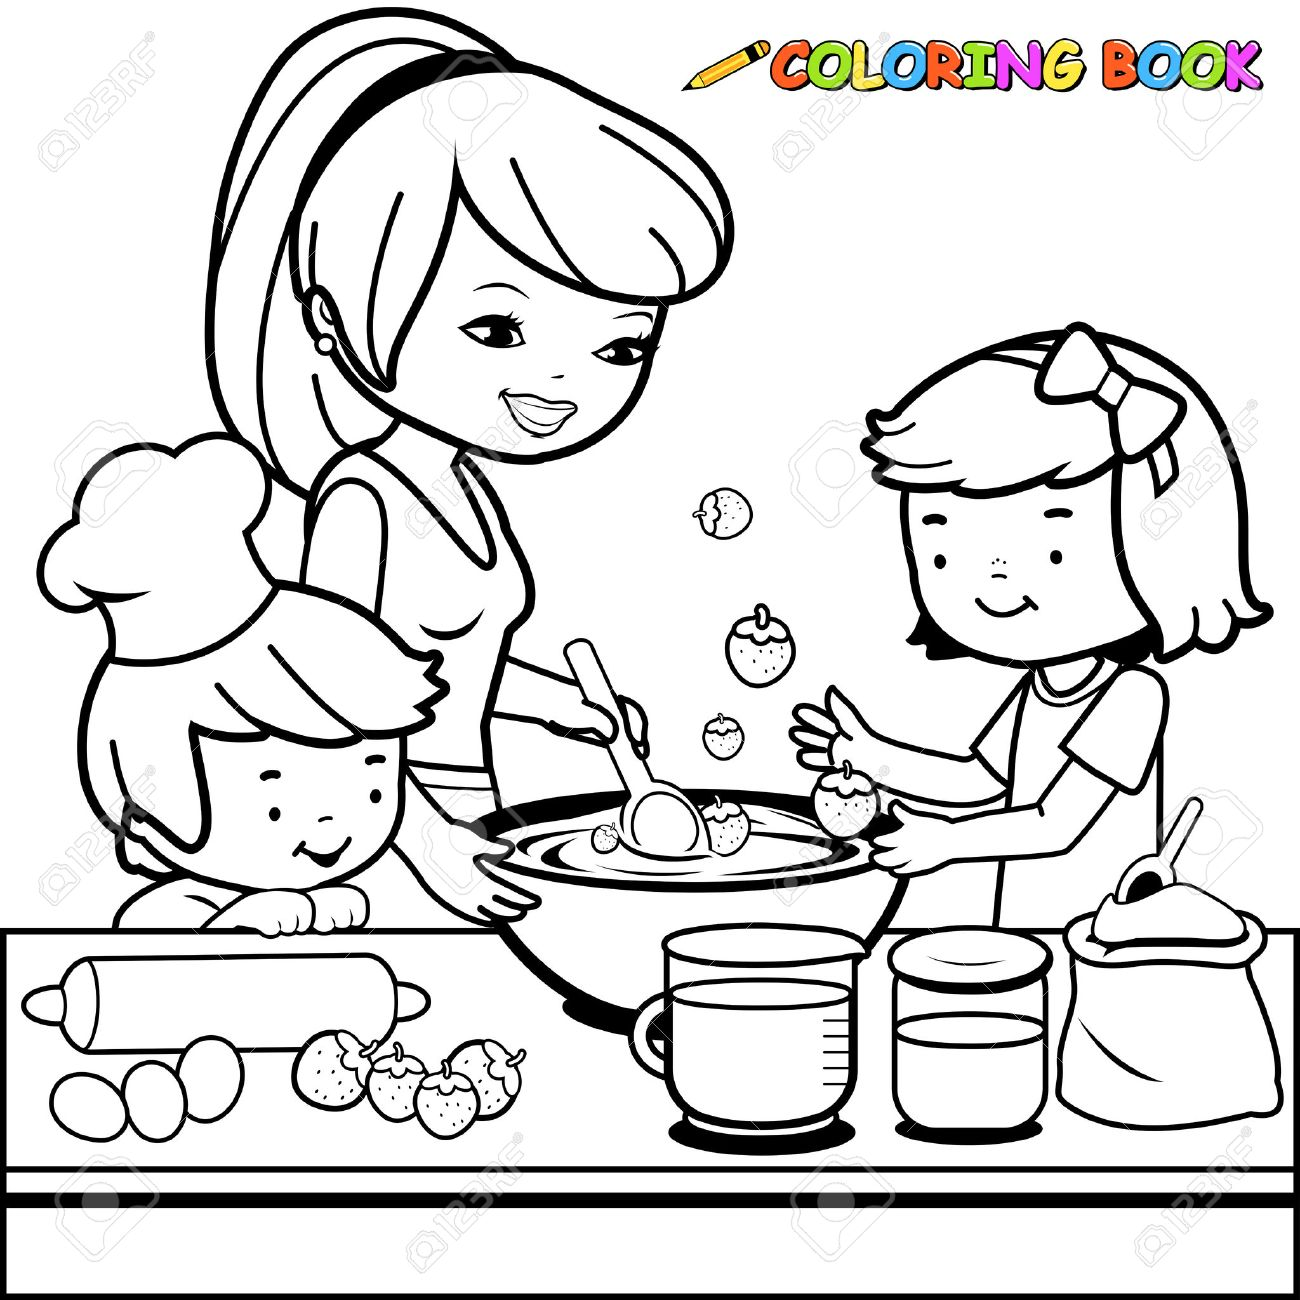 Mother and children cooking in the kitchen coloring book page - 60009242